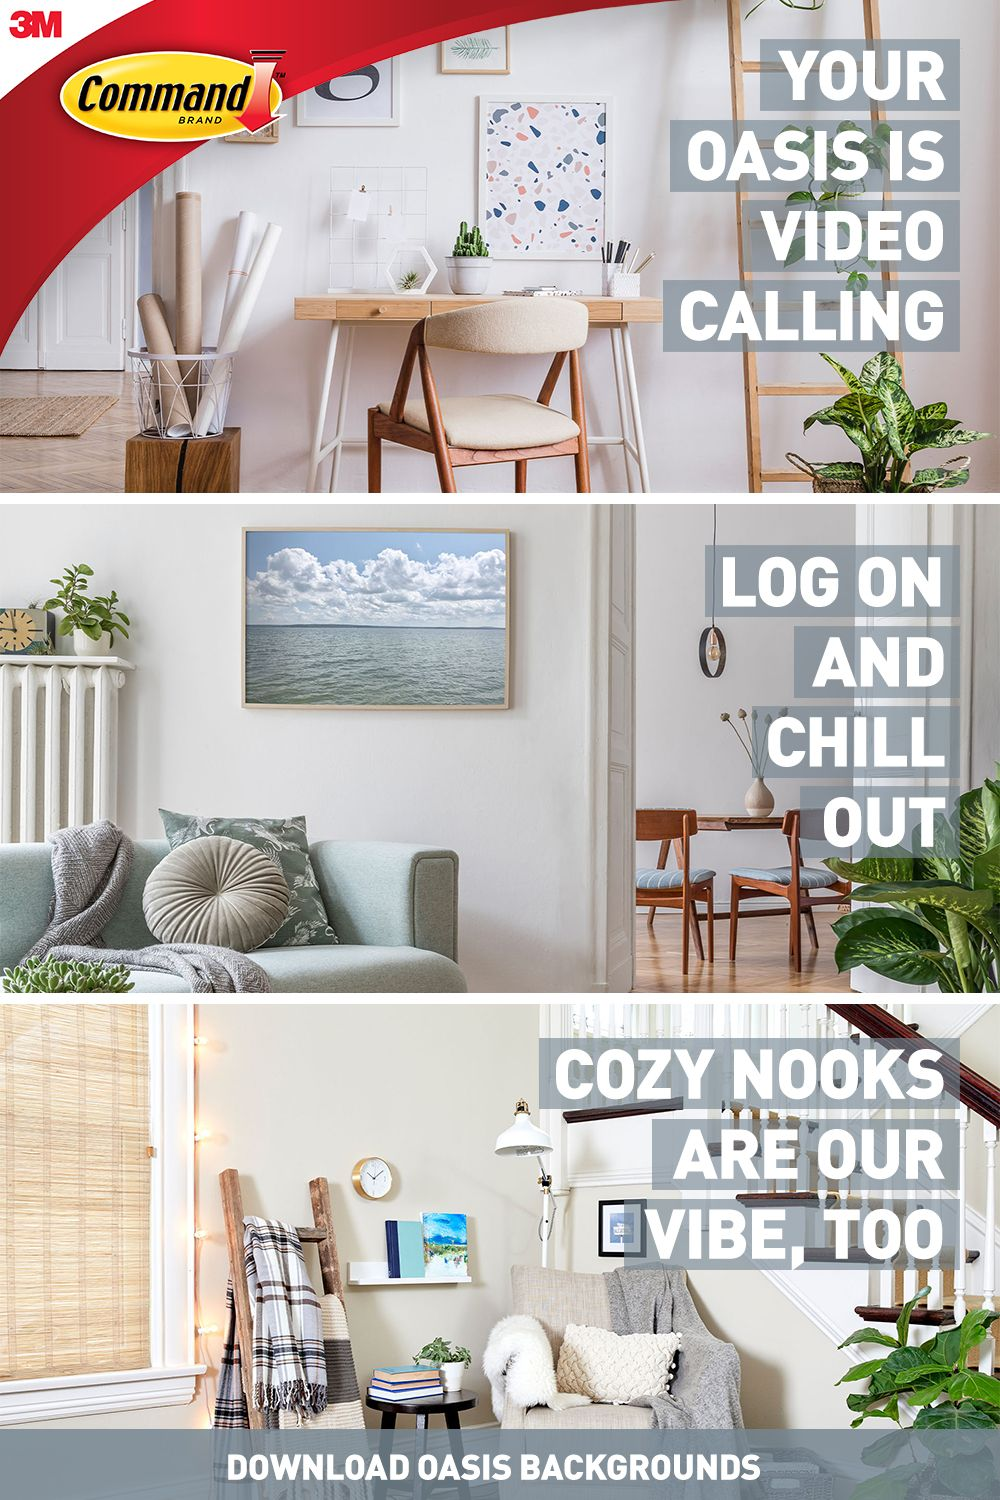 What S The Easiest Way To Spruce Up Your Space And Fill Those Empty Walls Before Your Next Video Call By Downlo Diy Furniture Plans Furniture Plans Cool Rooms